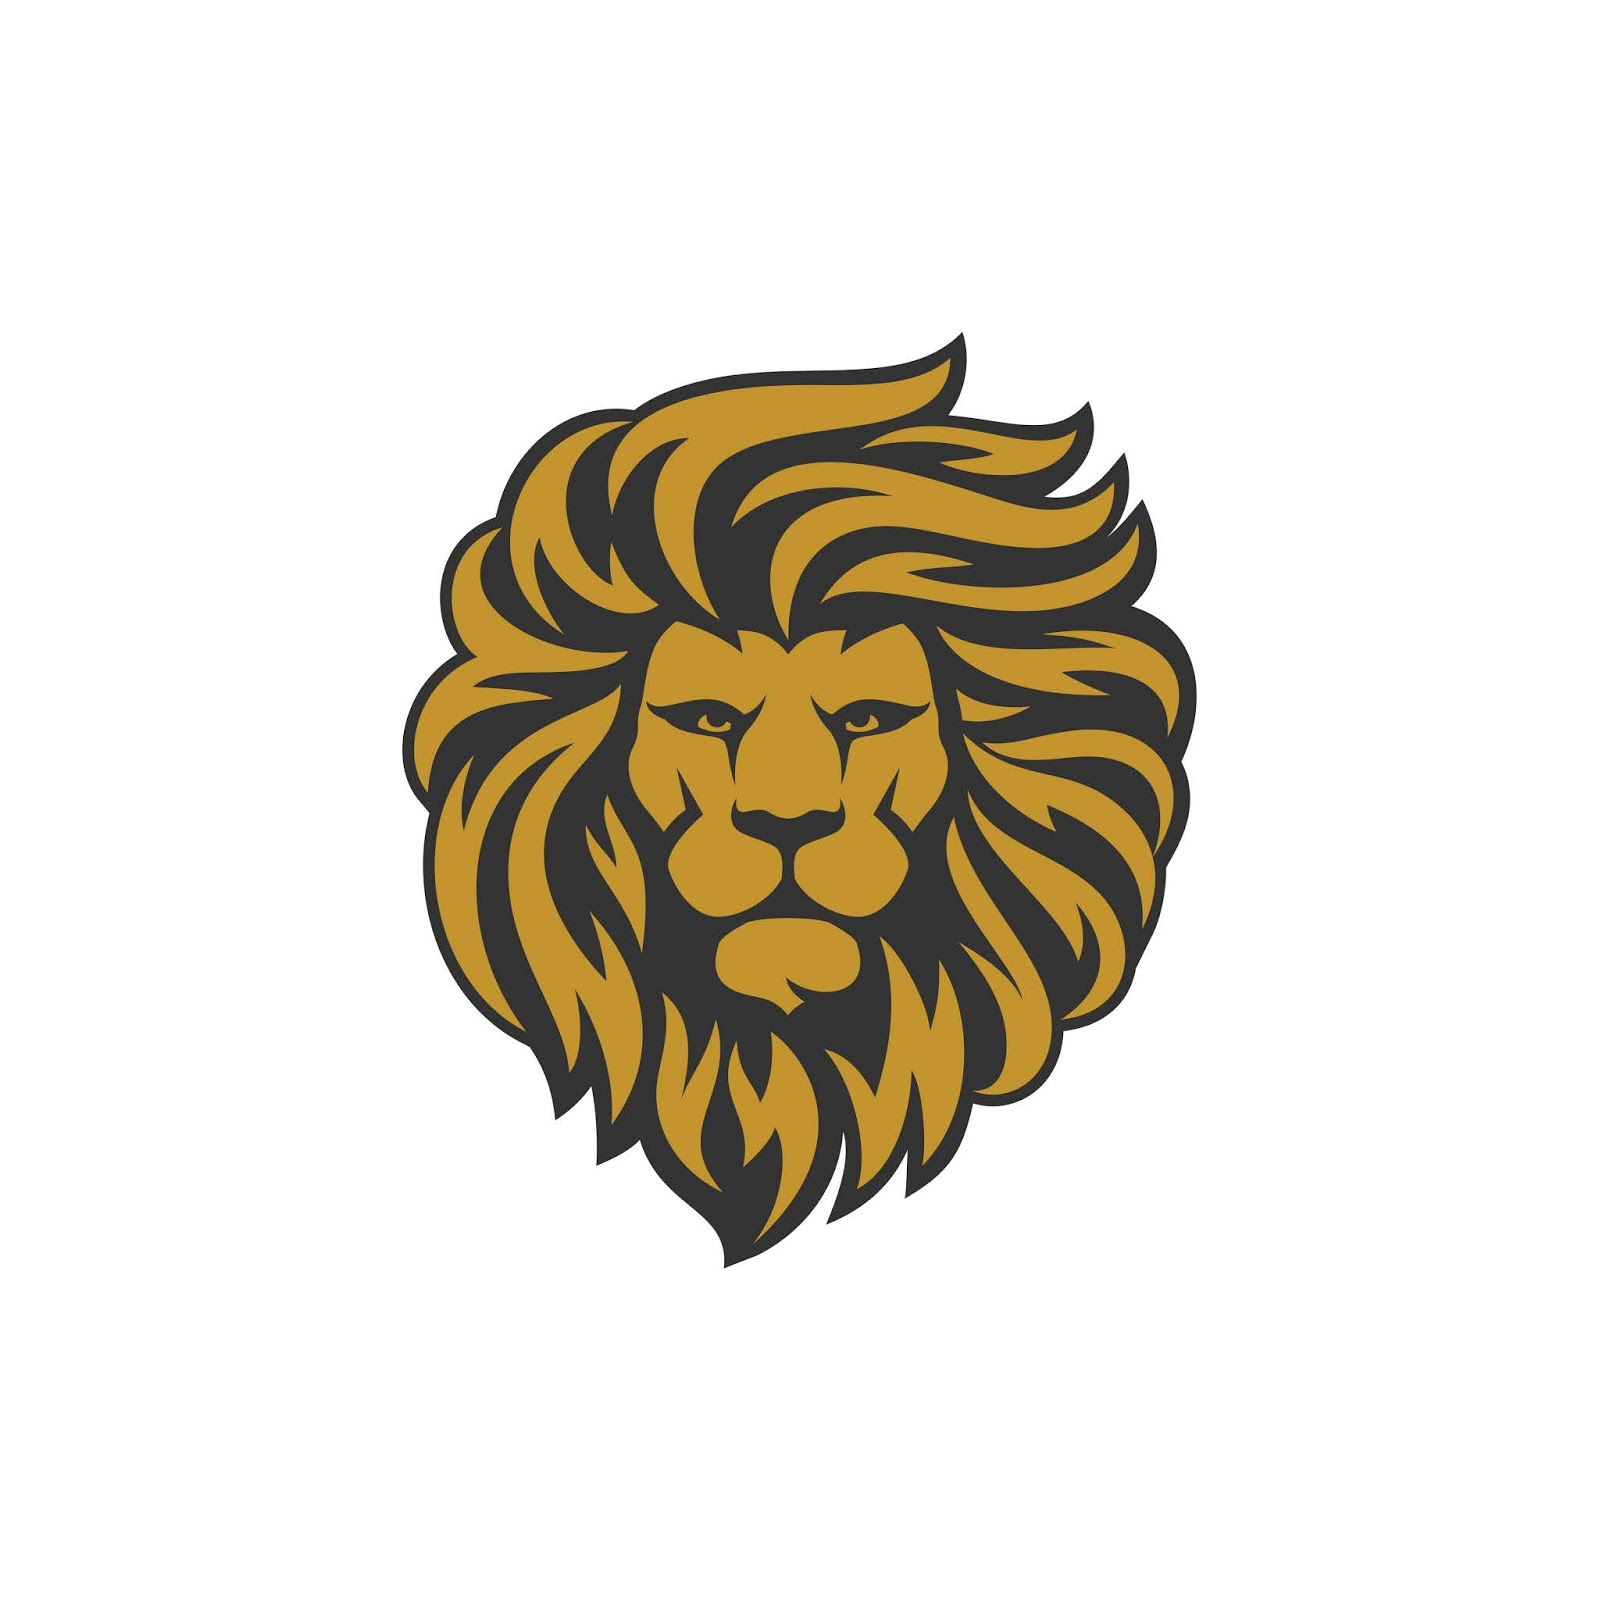 Lion Logo Vector Free Download Vector CDR, AI, EPS and PNG Formats